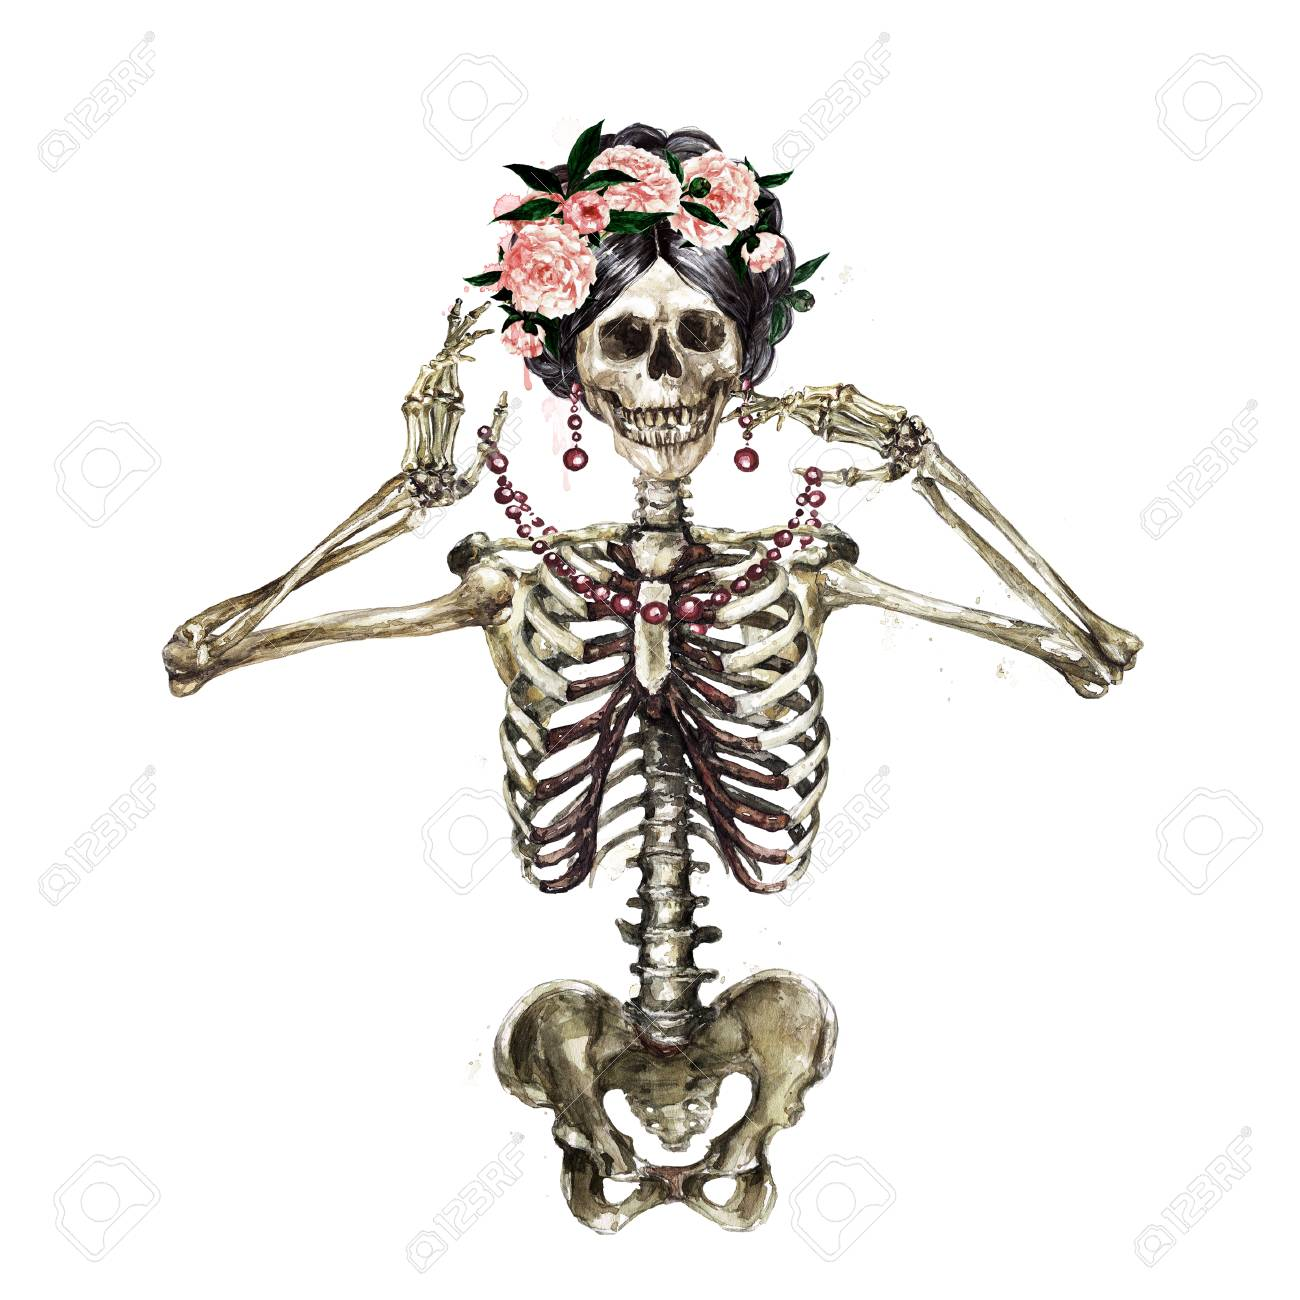 Human Skeleton decorated with flowers. Watercolor Illustration. - 106199343